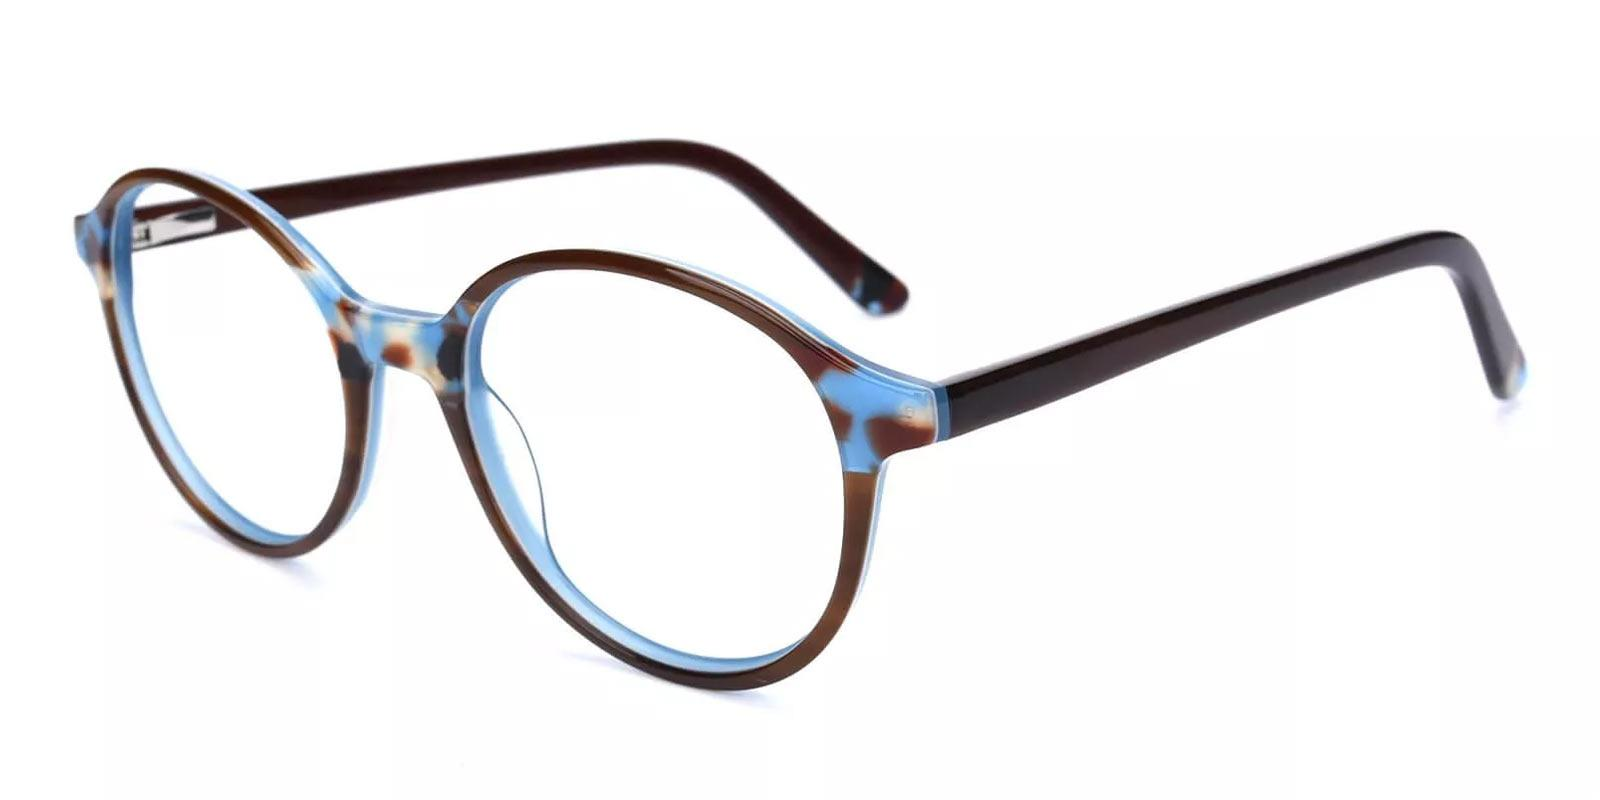 Giselle-Brown-Oval-Acetate-Eyeglasses-additional1